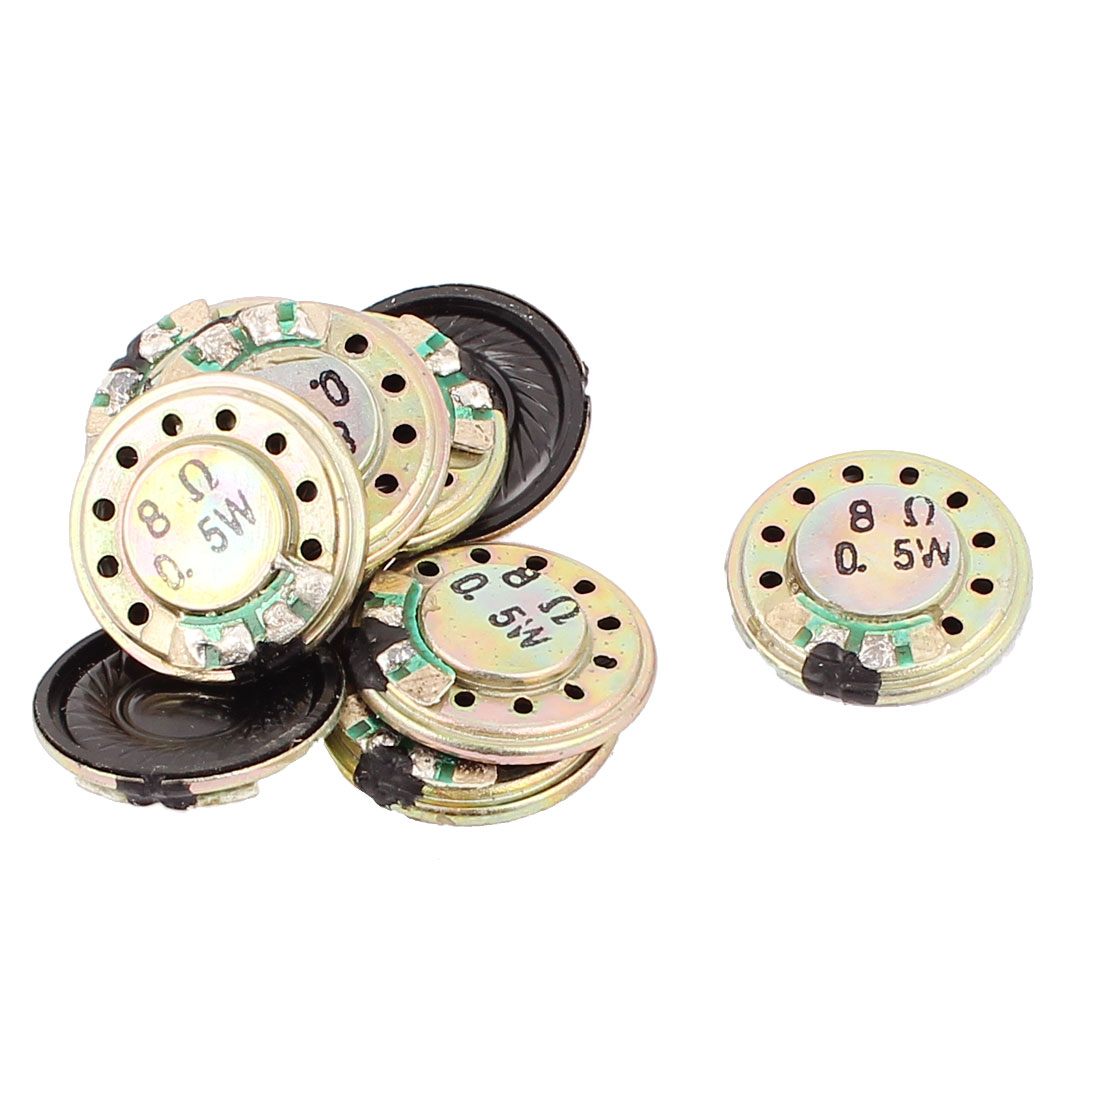 0.5W 20mm Diameter 8 Ohm Internal Mini Magnet Speaker Loudspeaker 10Pcs